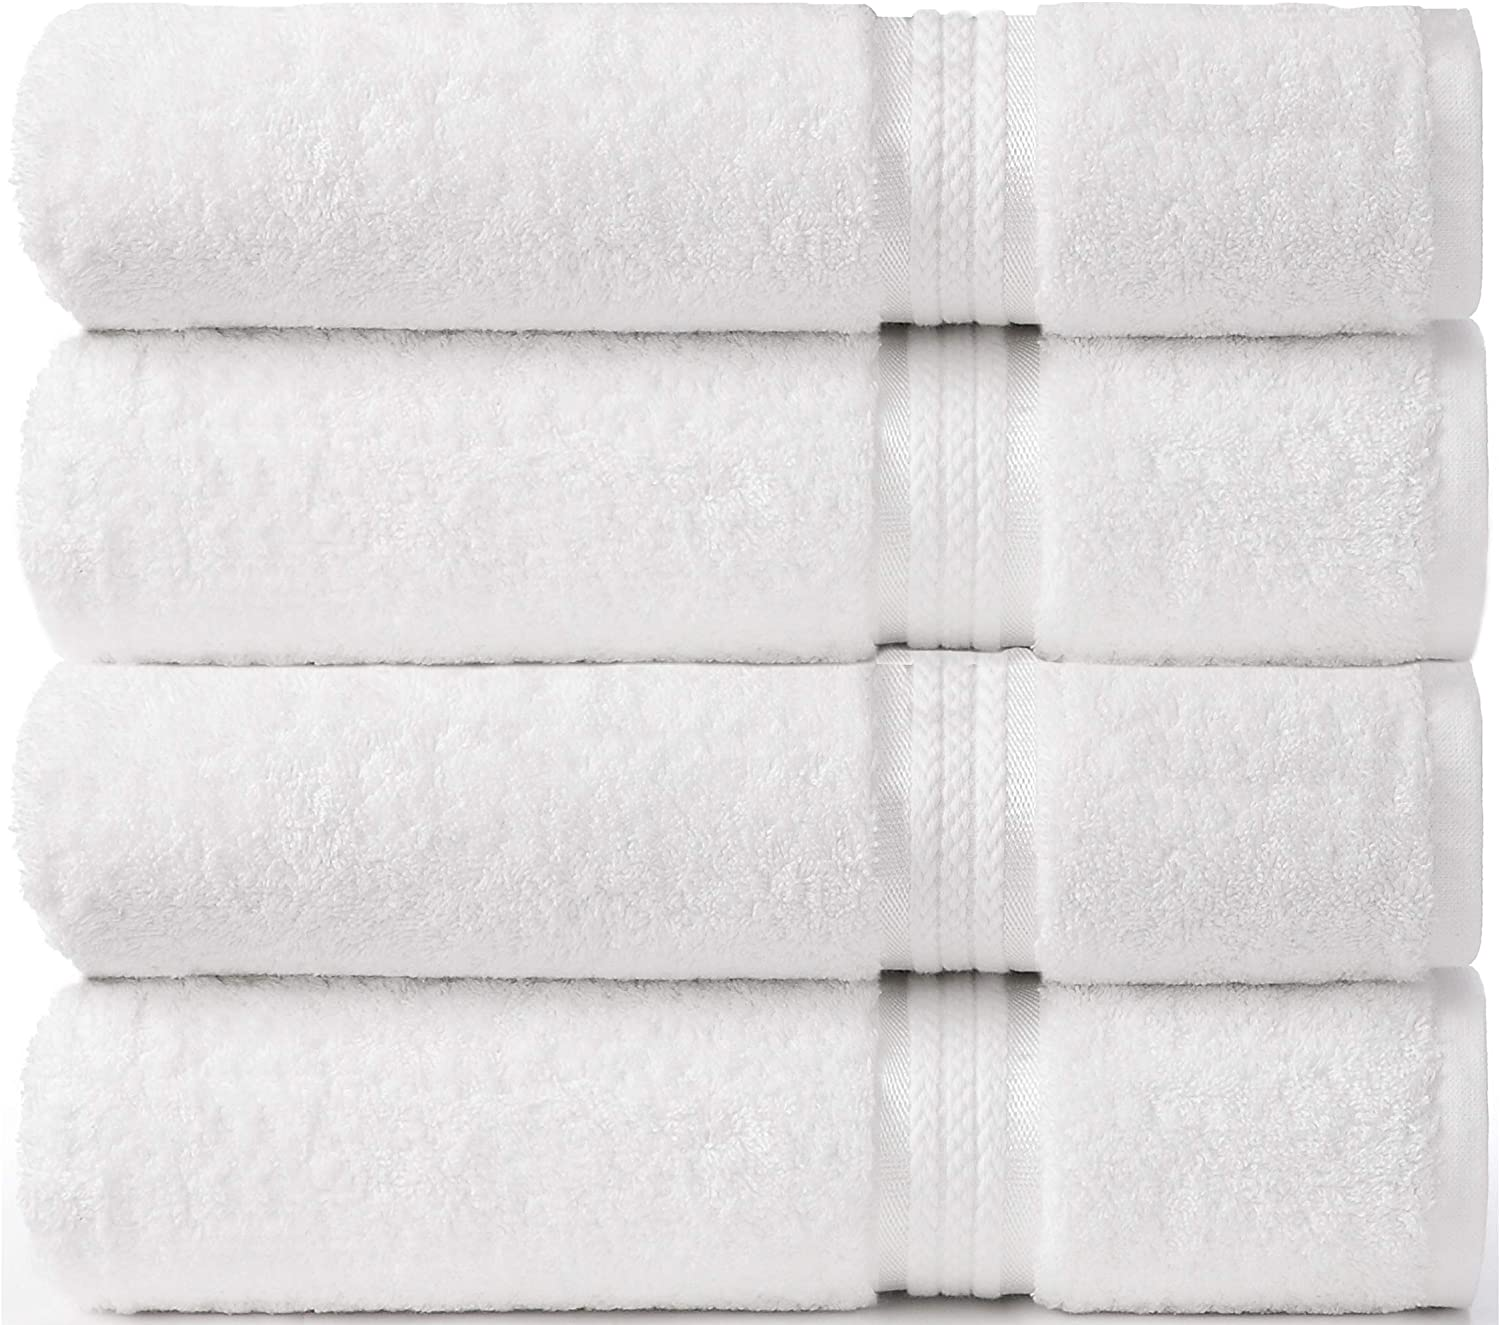 COTTON CRAFT Ultra Soft 4 Pack Oversized Extra Large Bath To